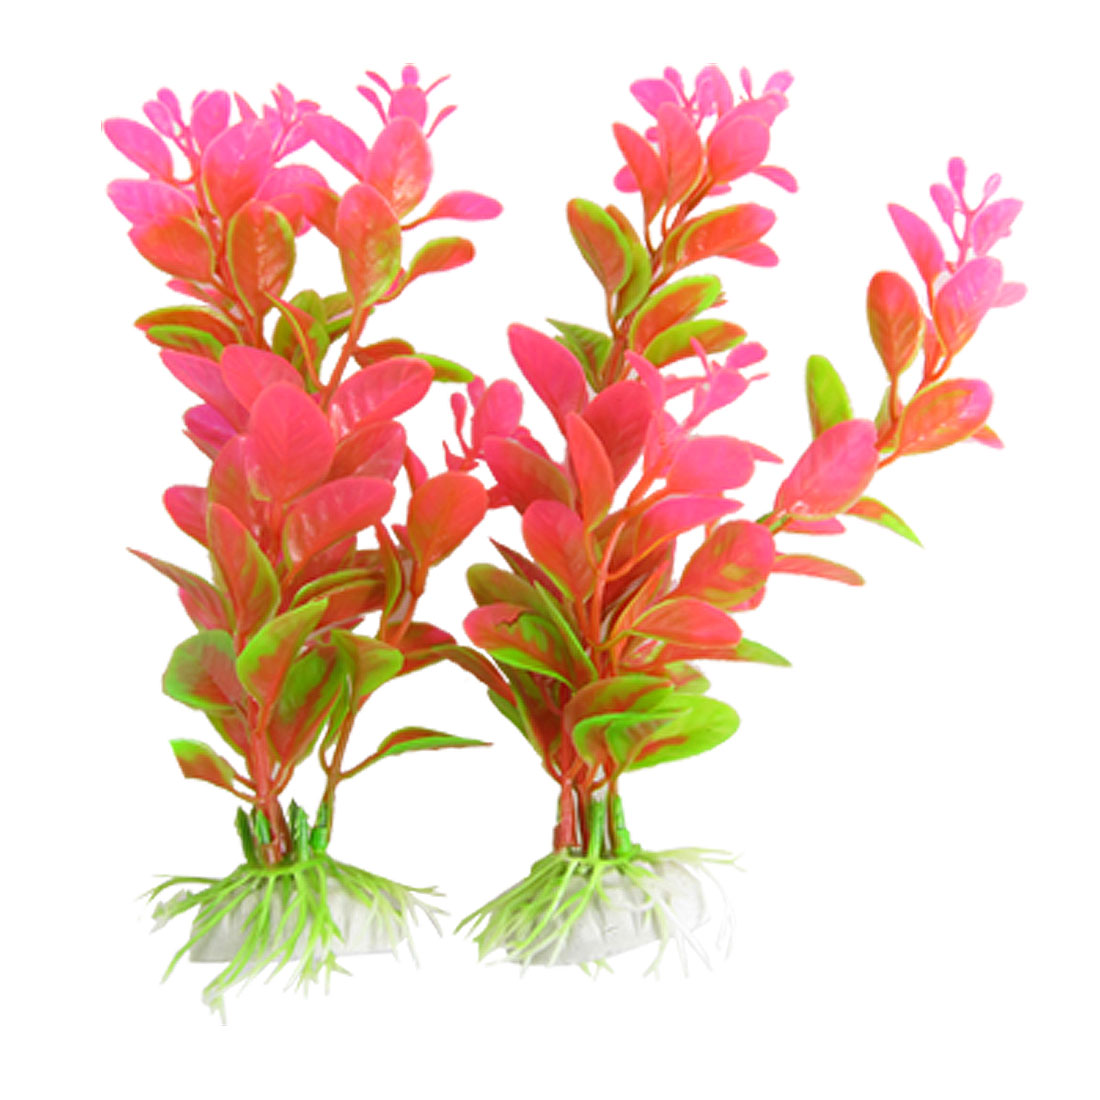 2 Pcs Hot Pink Green Plastic Aquatic Grass Decor for Fish Tank